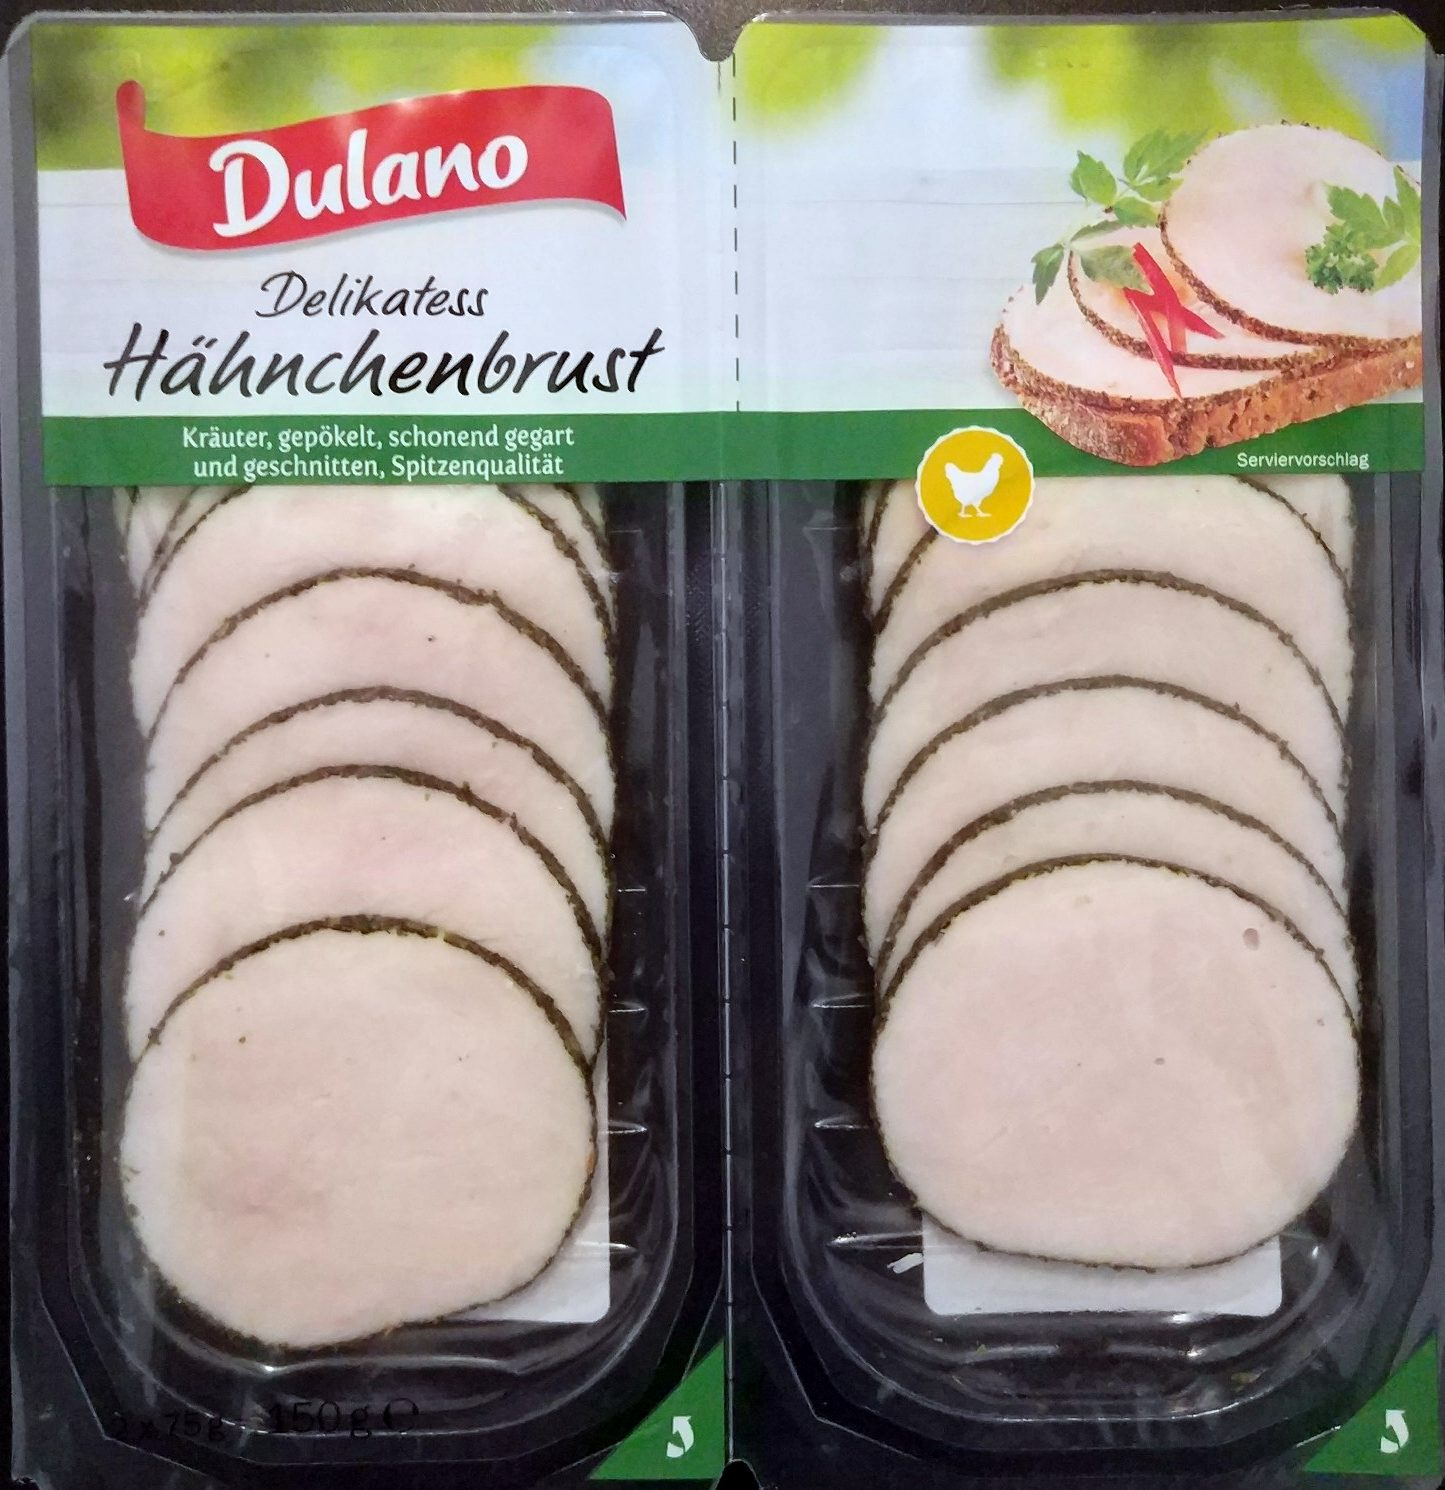 Chicken breast slices with herbs - Product - de